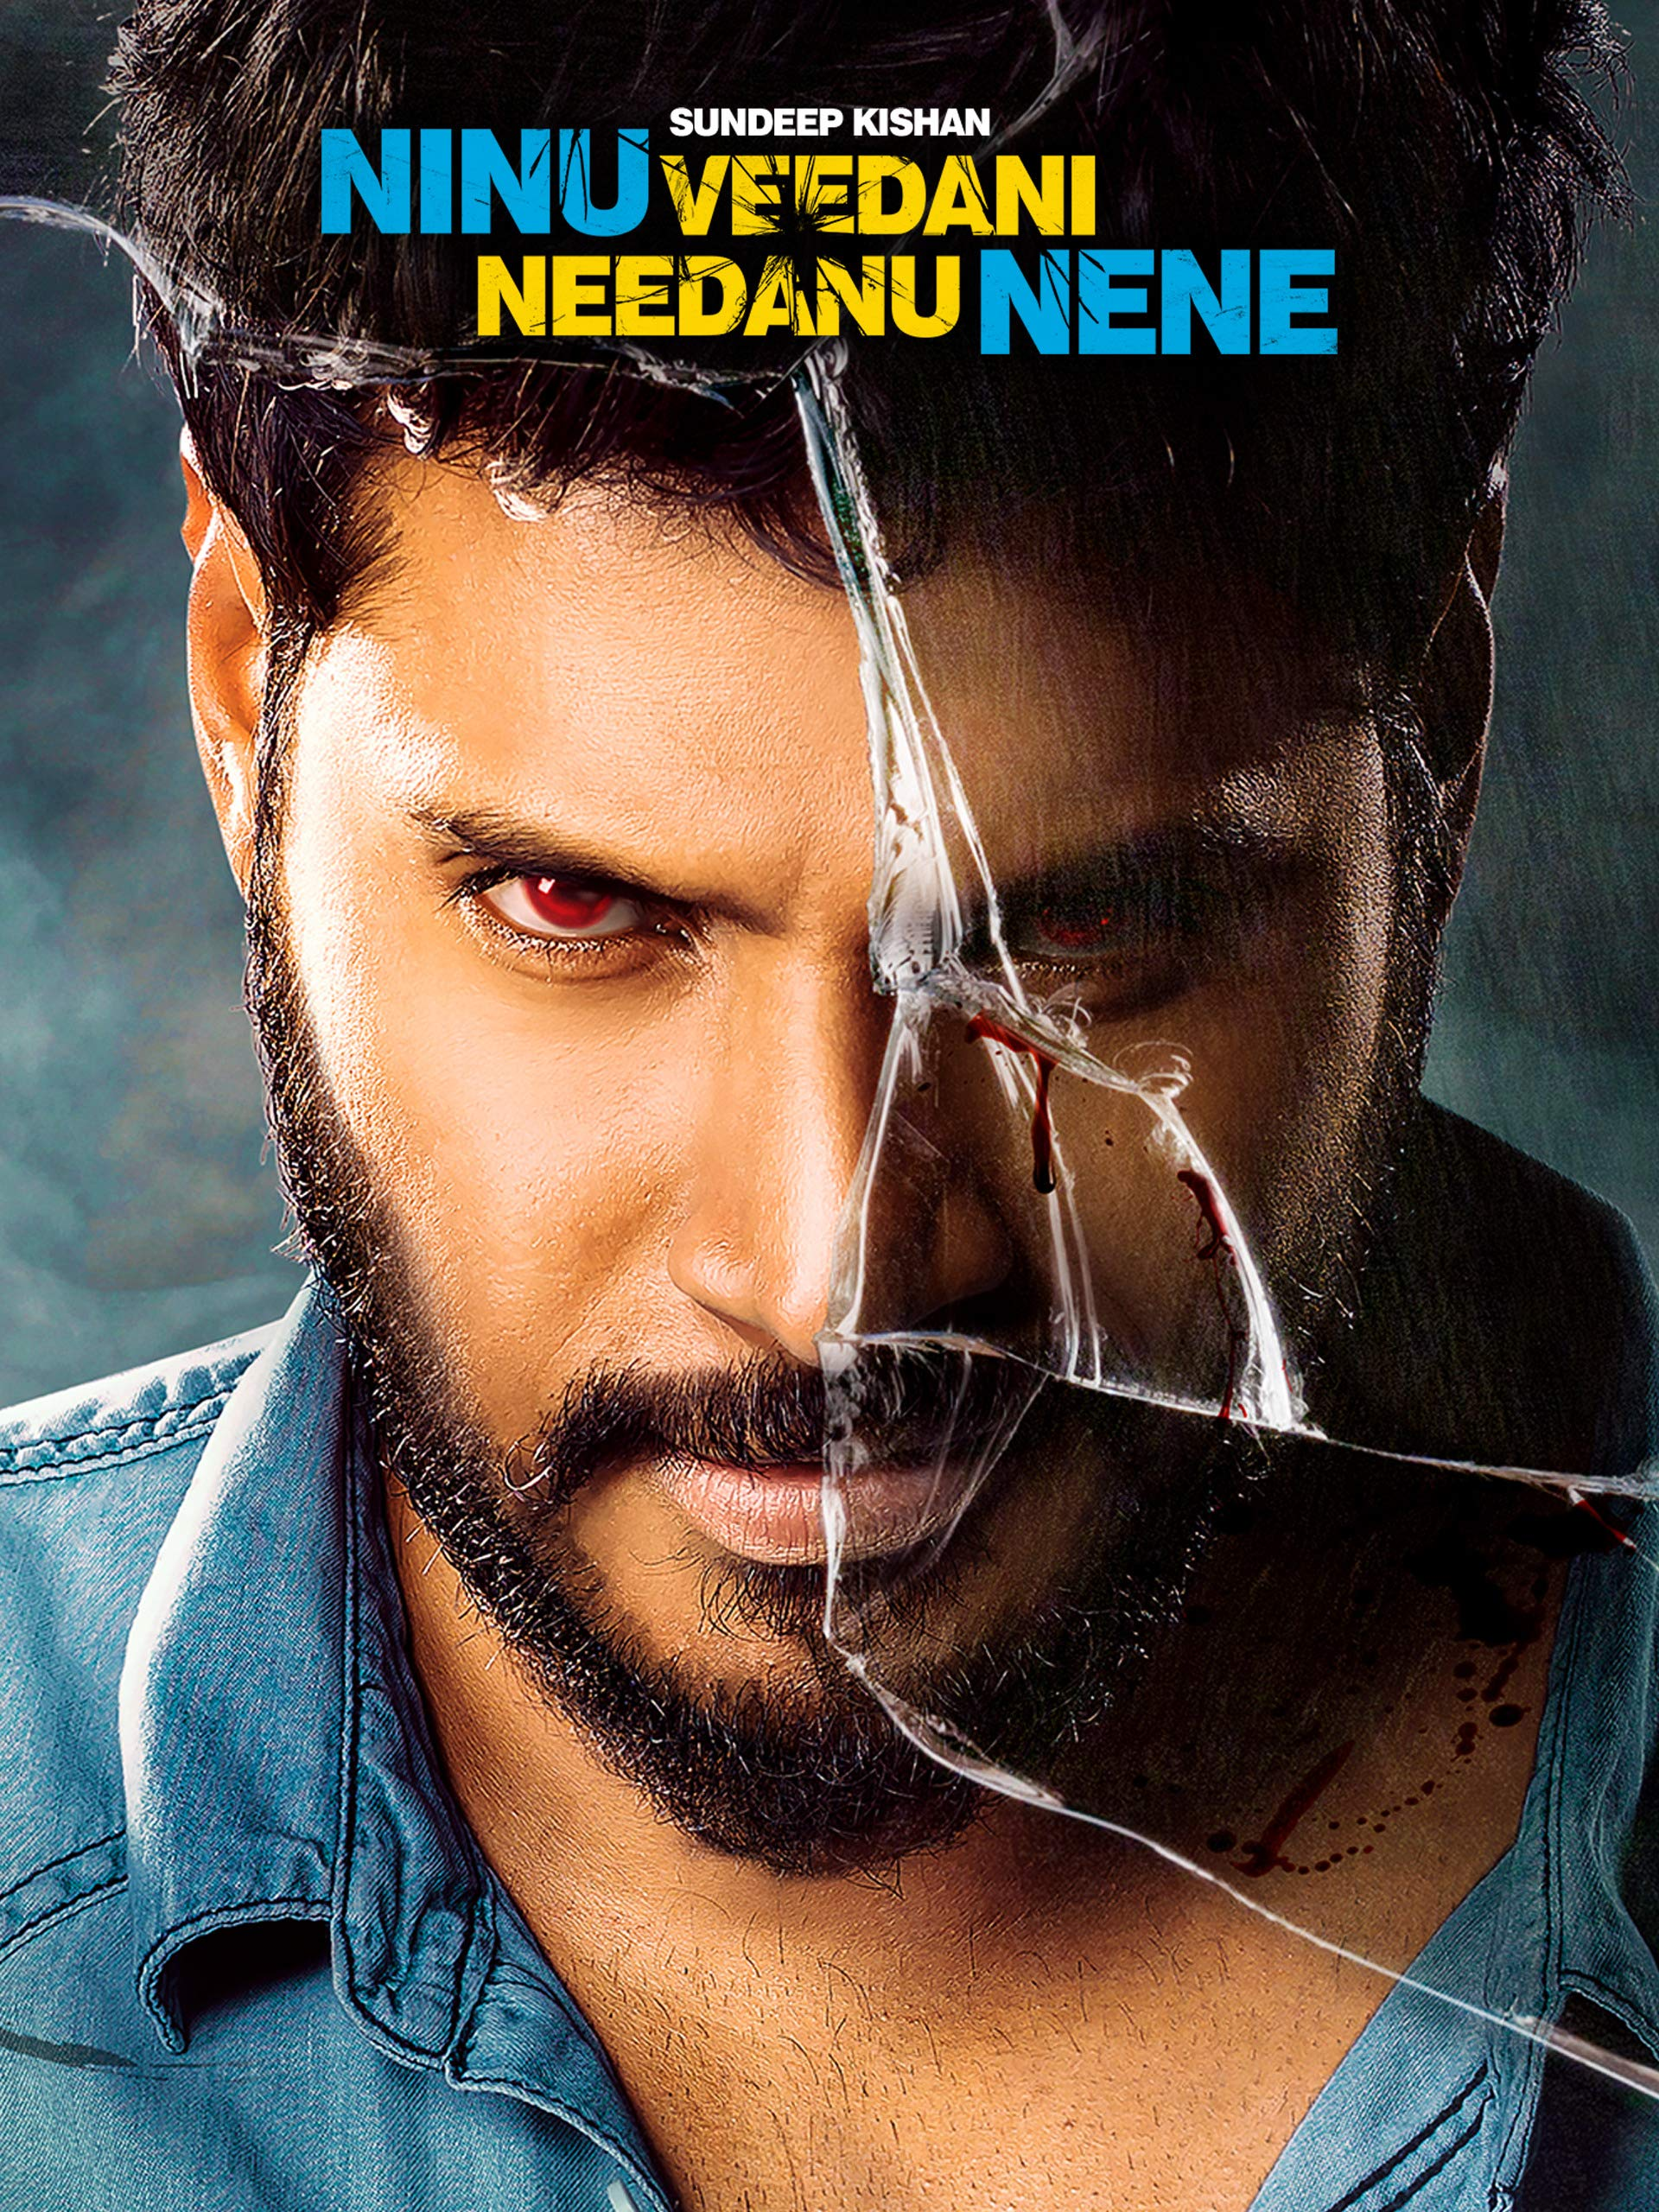 Ninu Veedani Needanu Nene on Amazon Prime Video UK